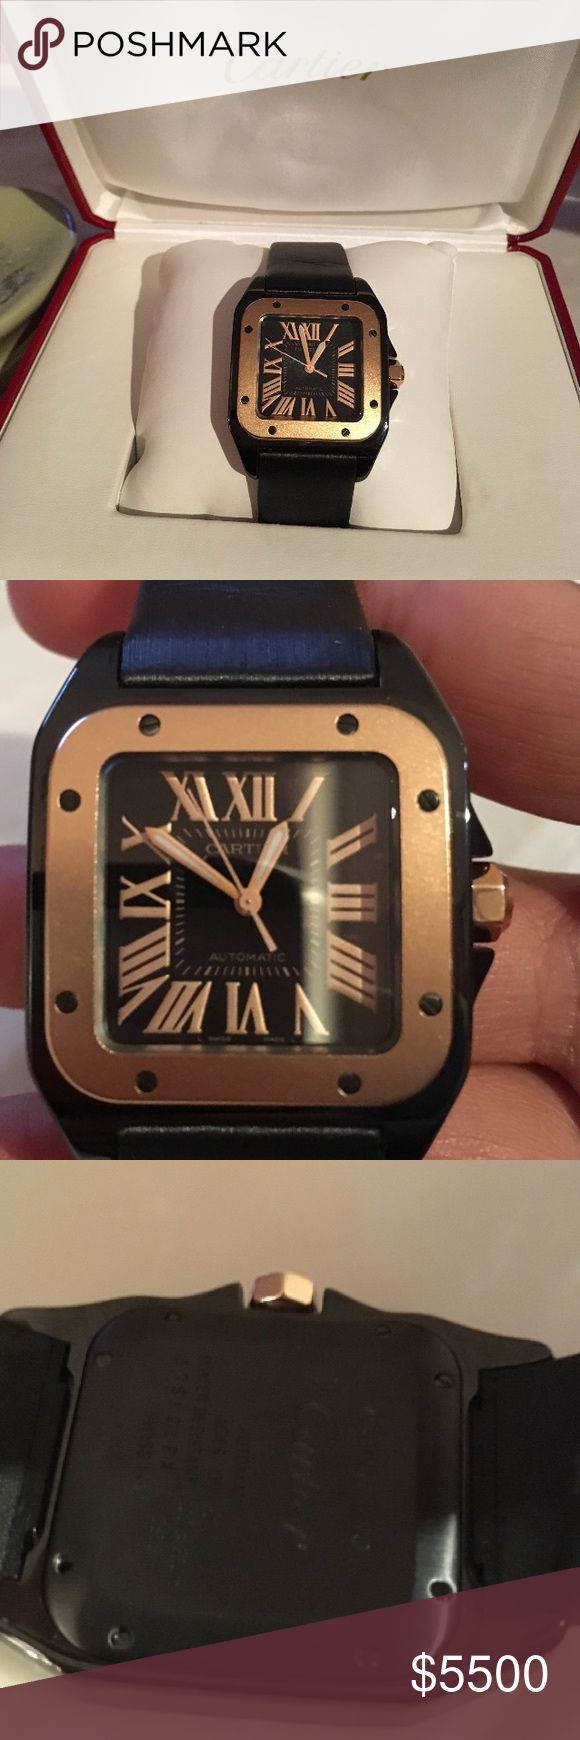 Cartier Watch Gently used 100% authentic Santos 100 Cartier watch. Rose gold face and of course it comes in its original box Cartier Accessories Watches